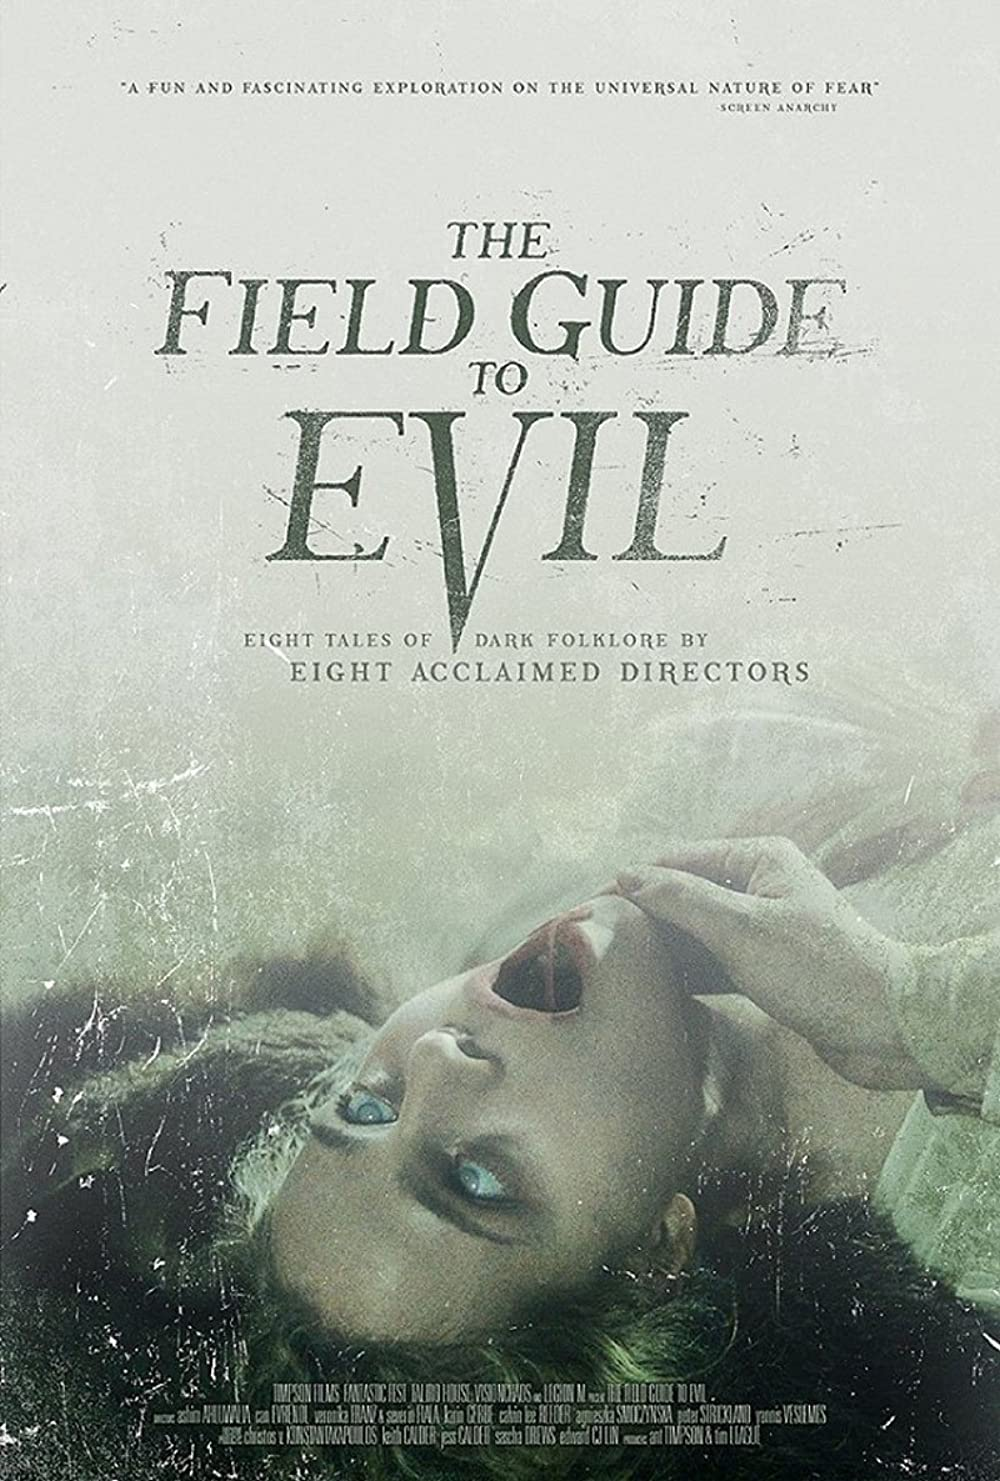 18+ The Field Guide To Evil 2018 Hindi Dual Audio 720p UNRATED BluRay ESubs 1.2GB Download